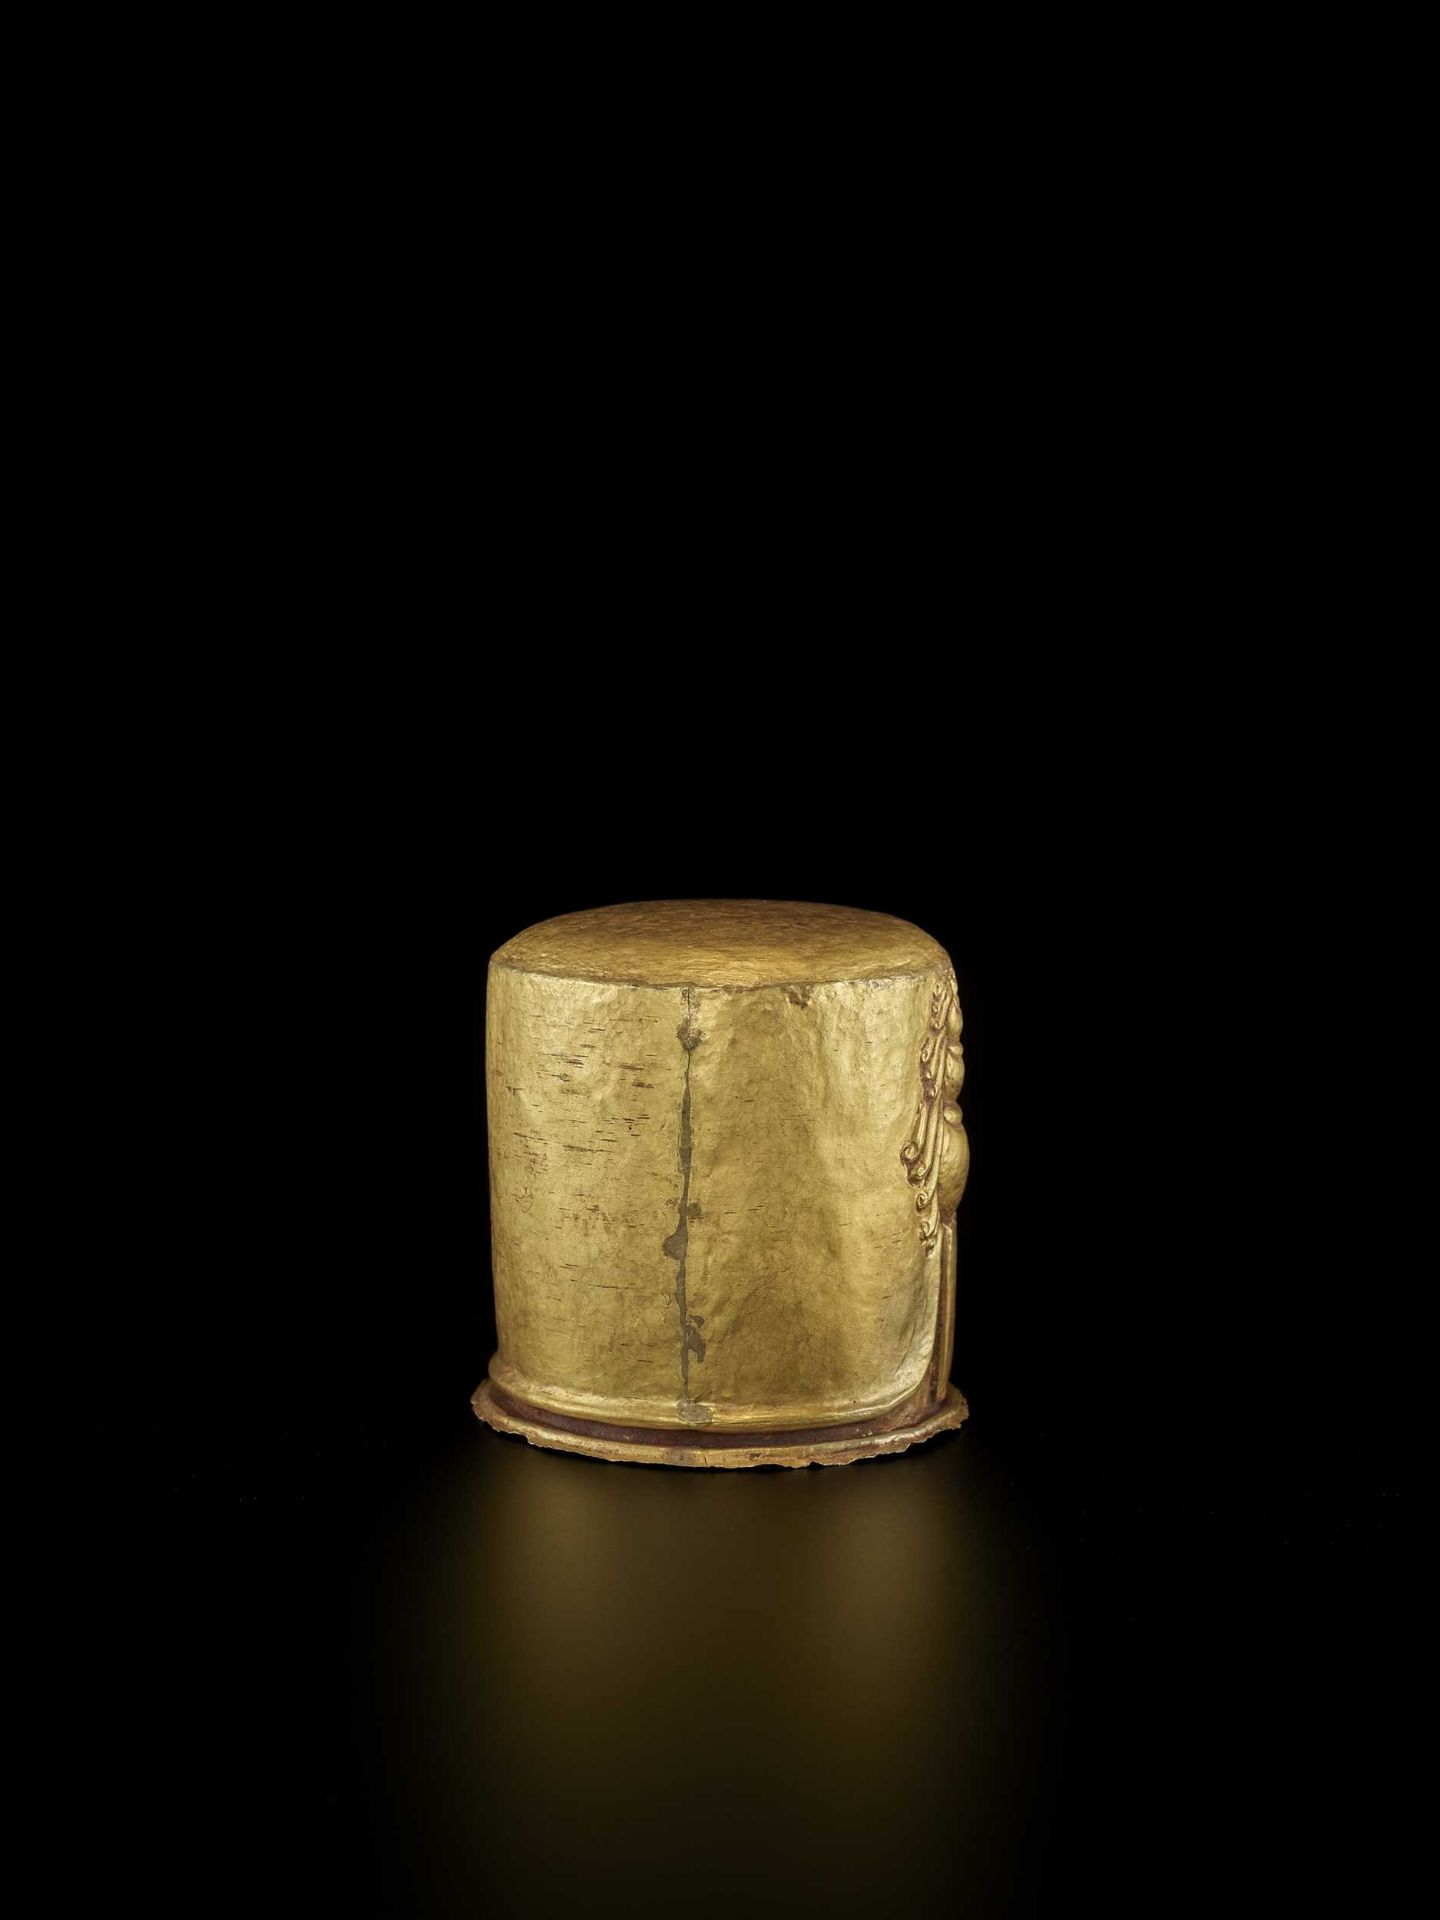 AN EXCEPTIONAL AND RARE CHAM GOLD REPOUSSÉ LINGAM WITH SHIVA'S LOCKS OF HAIR - Bild 4 aus 8